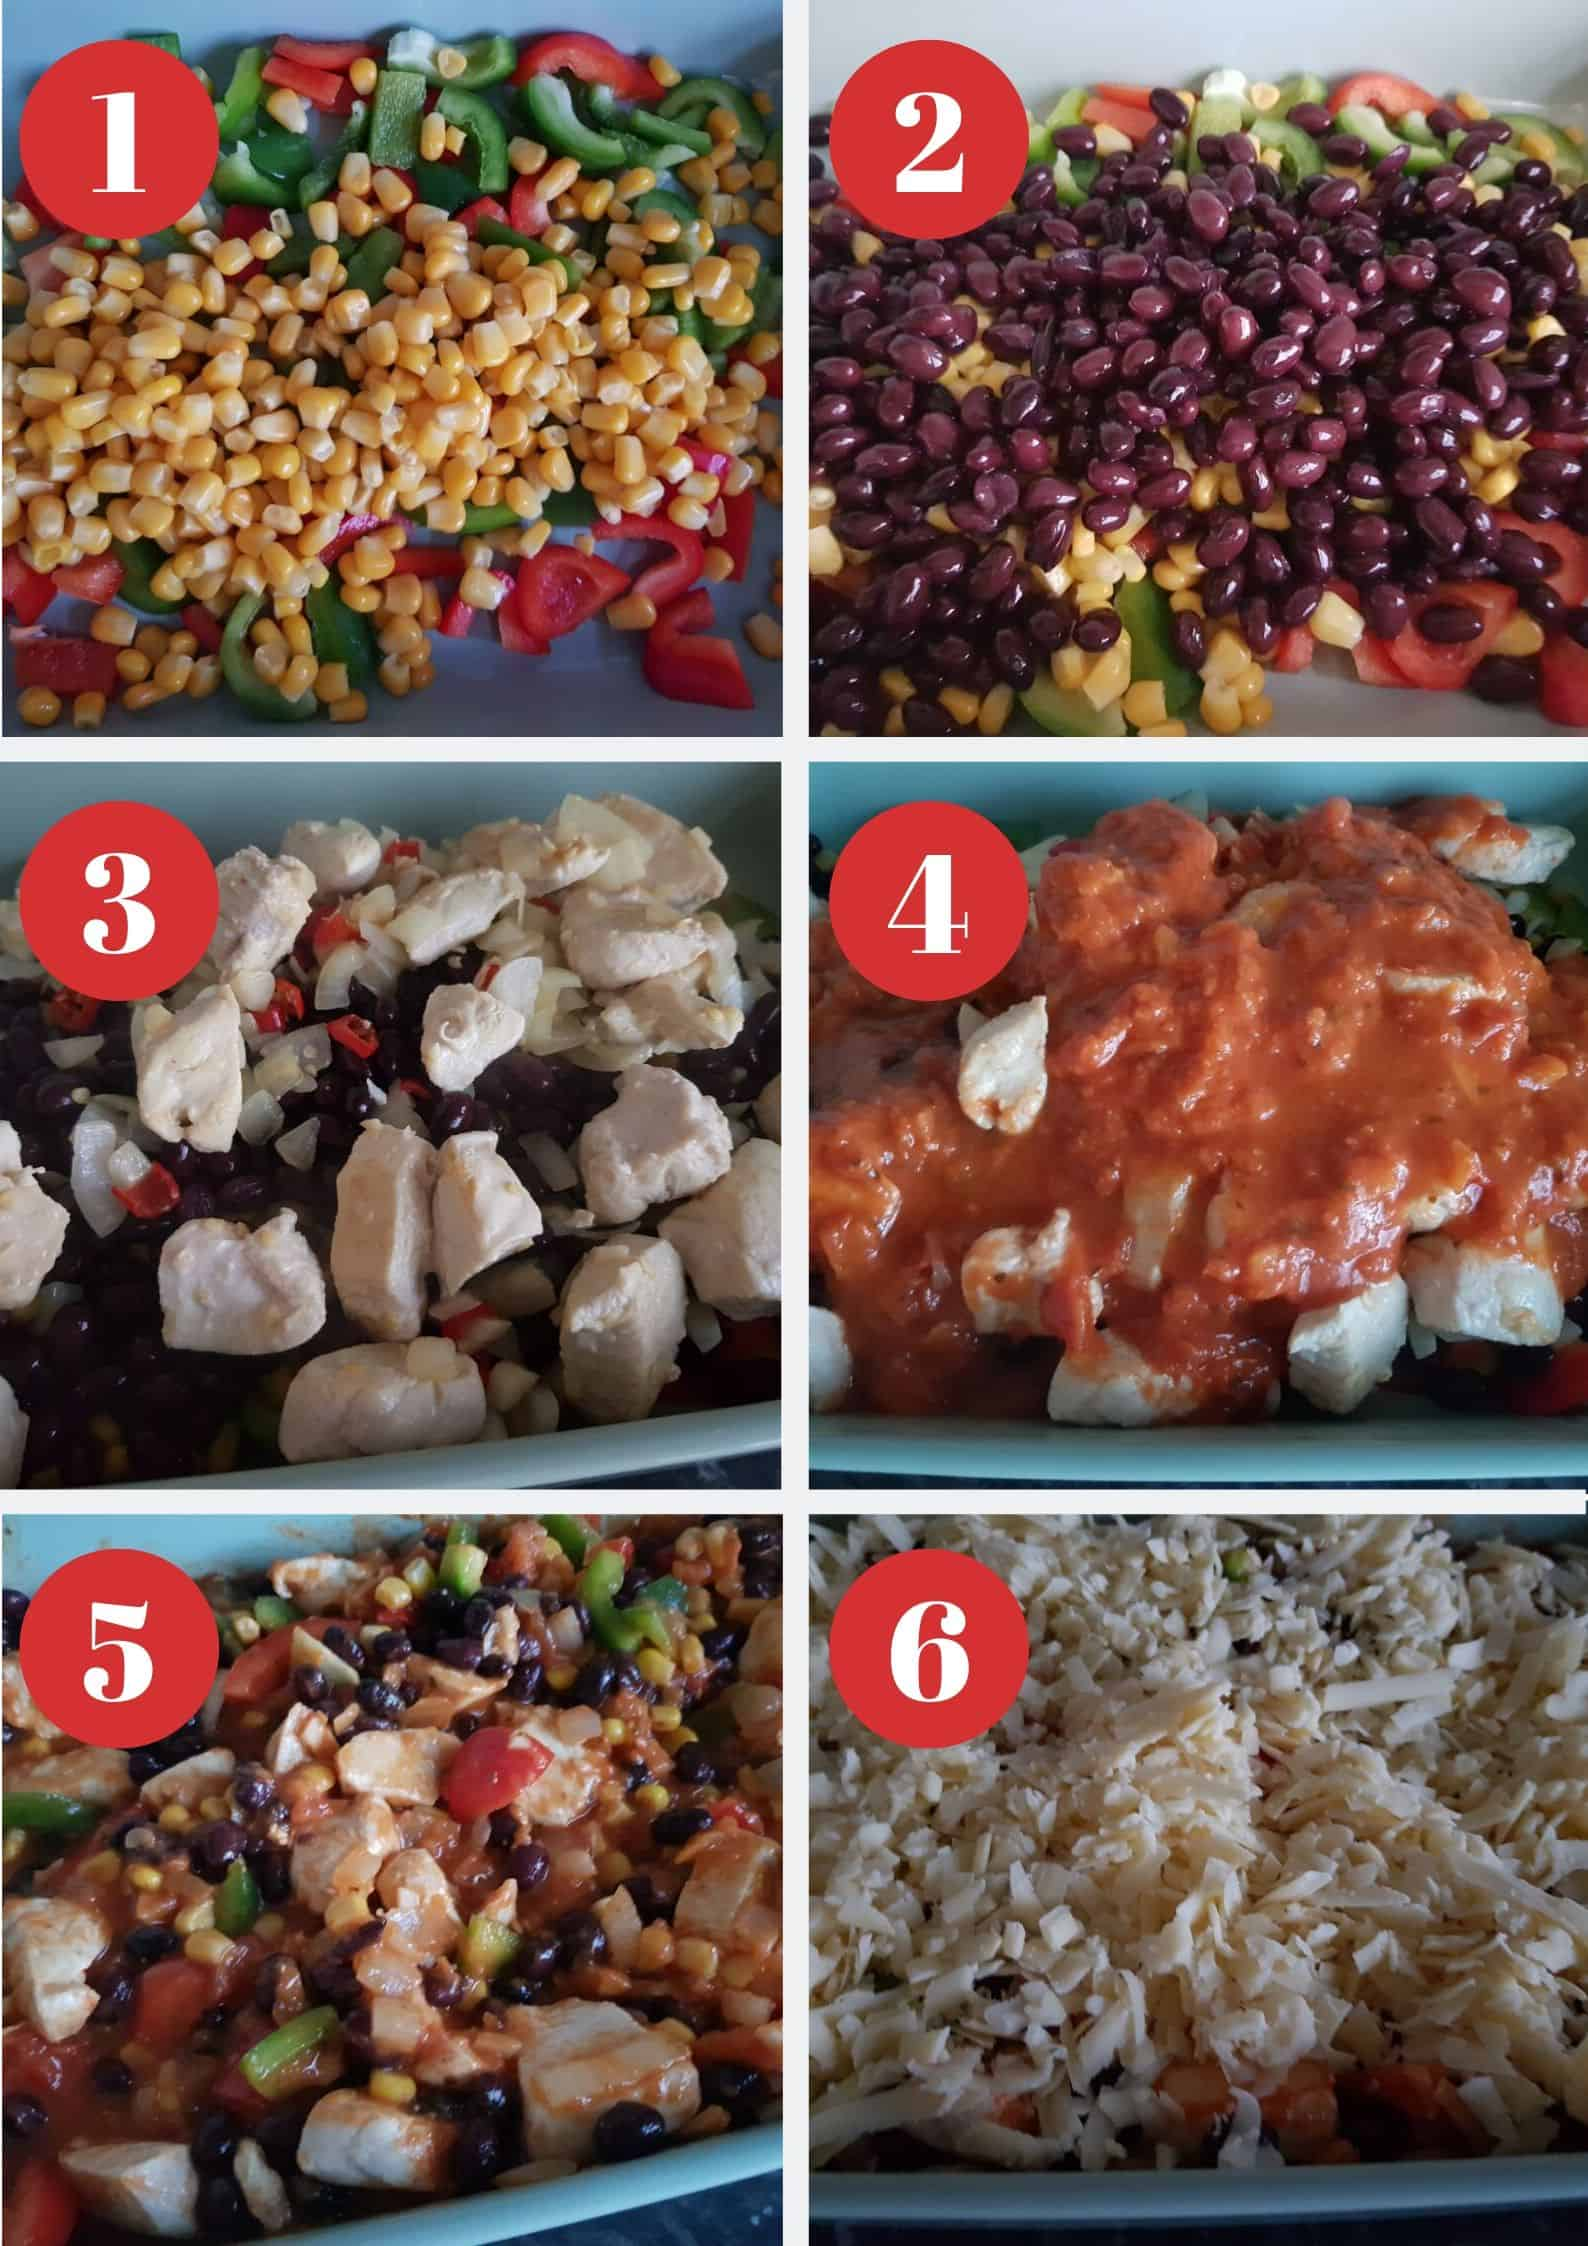 Step by step picture guide on how to make a Mexican chicken casserole.